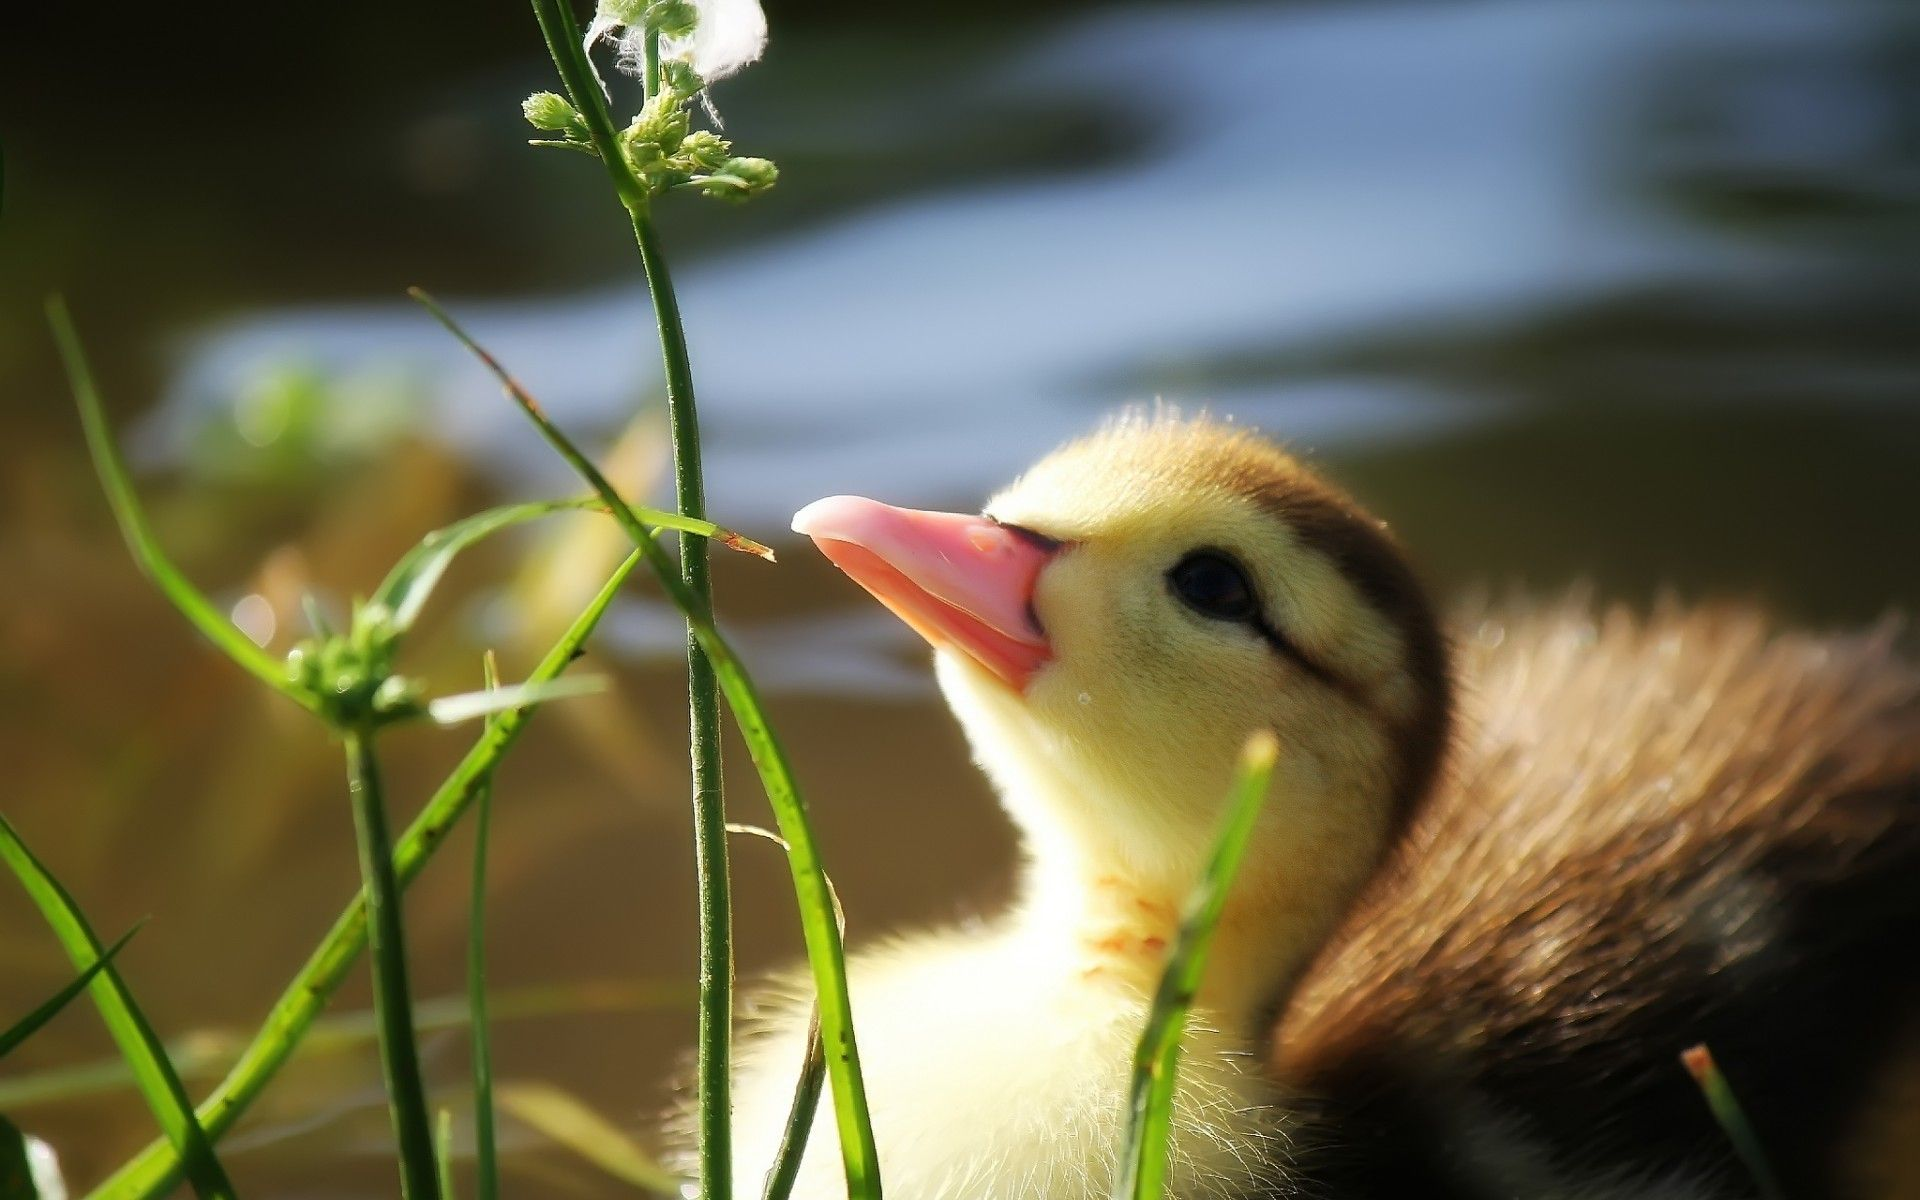 Duck grass beak pond water duckling wallpaper | 1920x1200 | 70405 ...